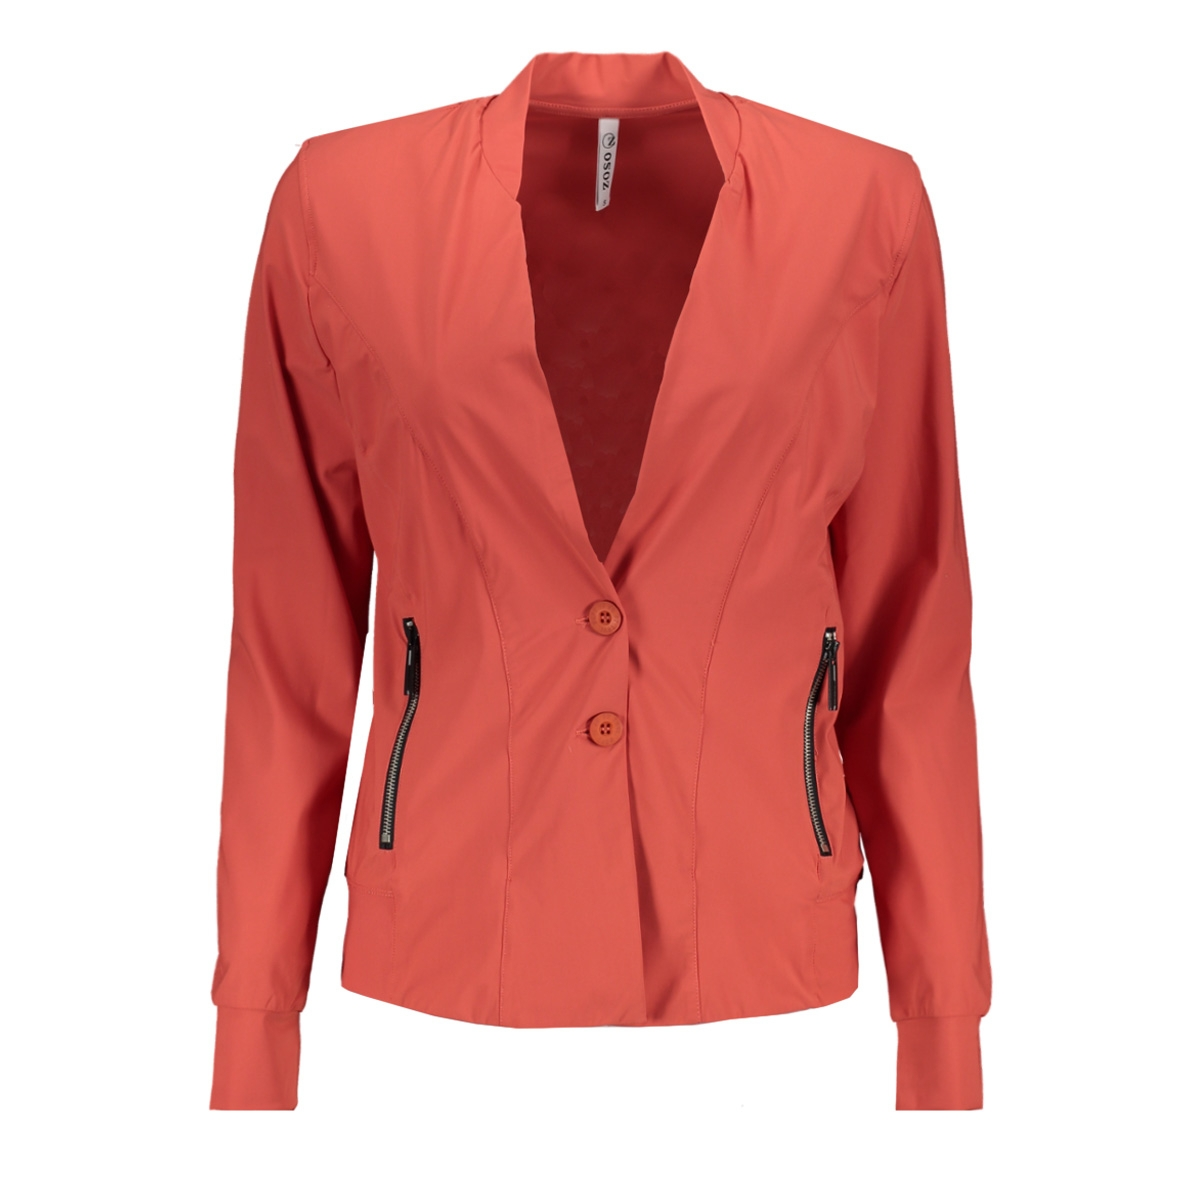 201 gina travel jacket zoso blazer 0072 desert red